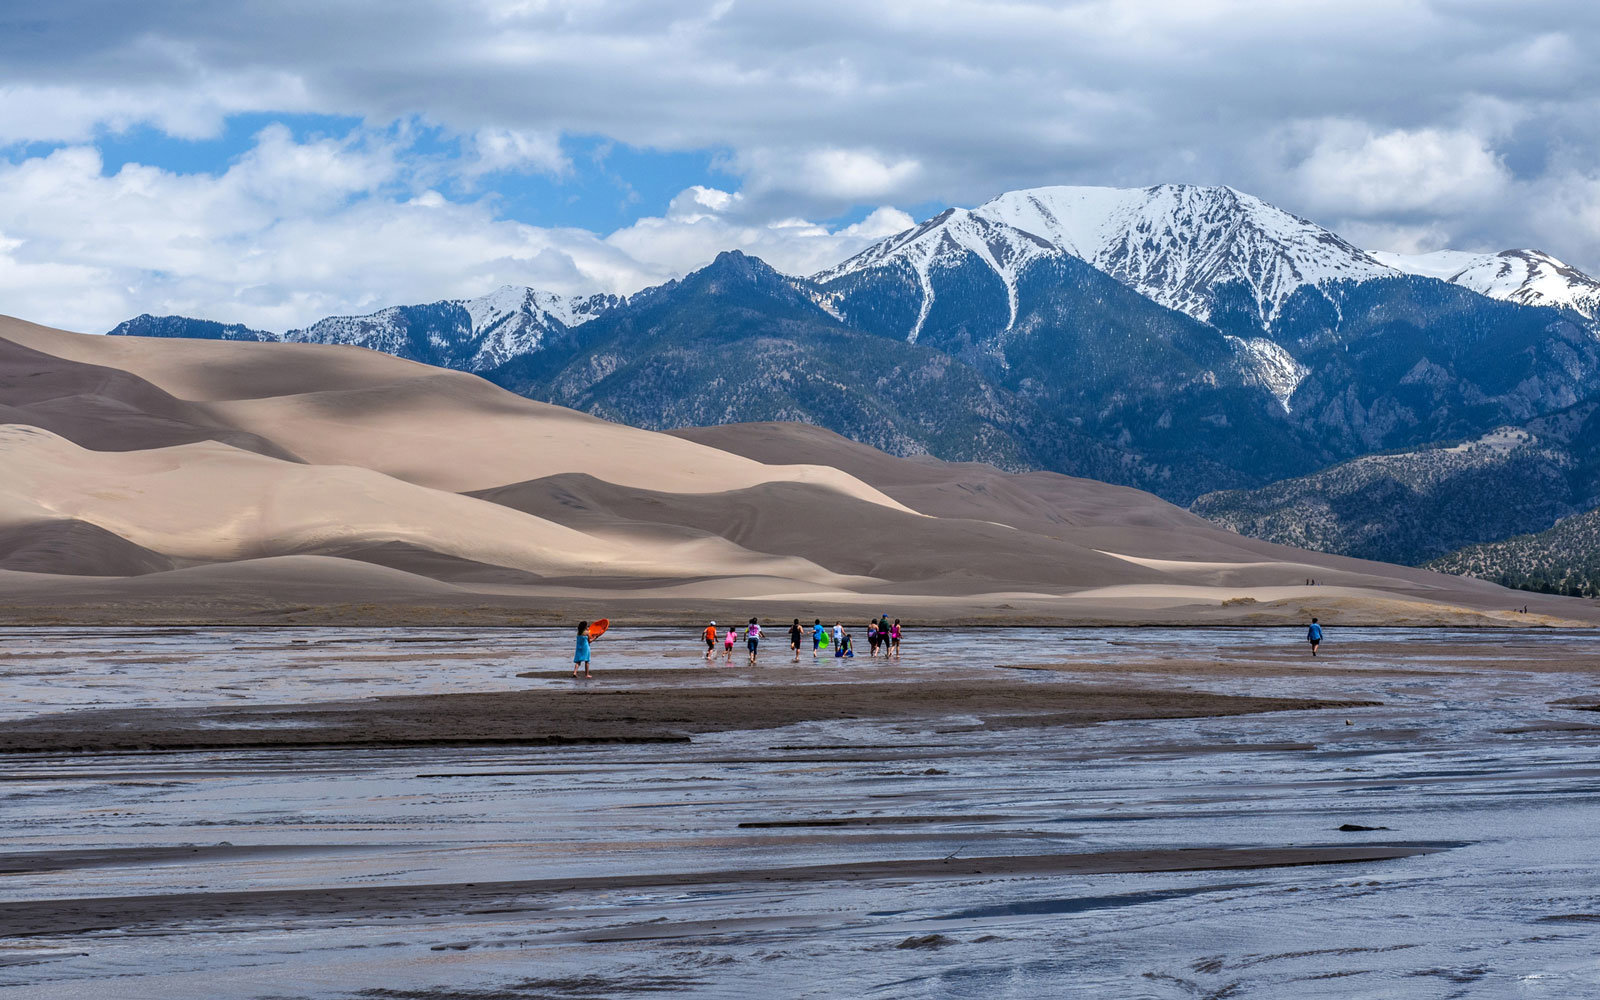 Every Year the Snow Melt Creates an Amazing Natural Waterslide at Great Sand Dunes National Park